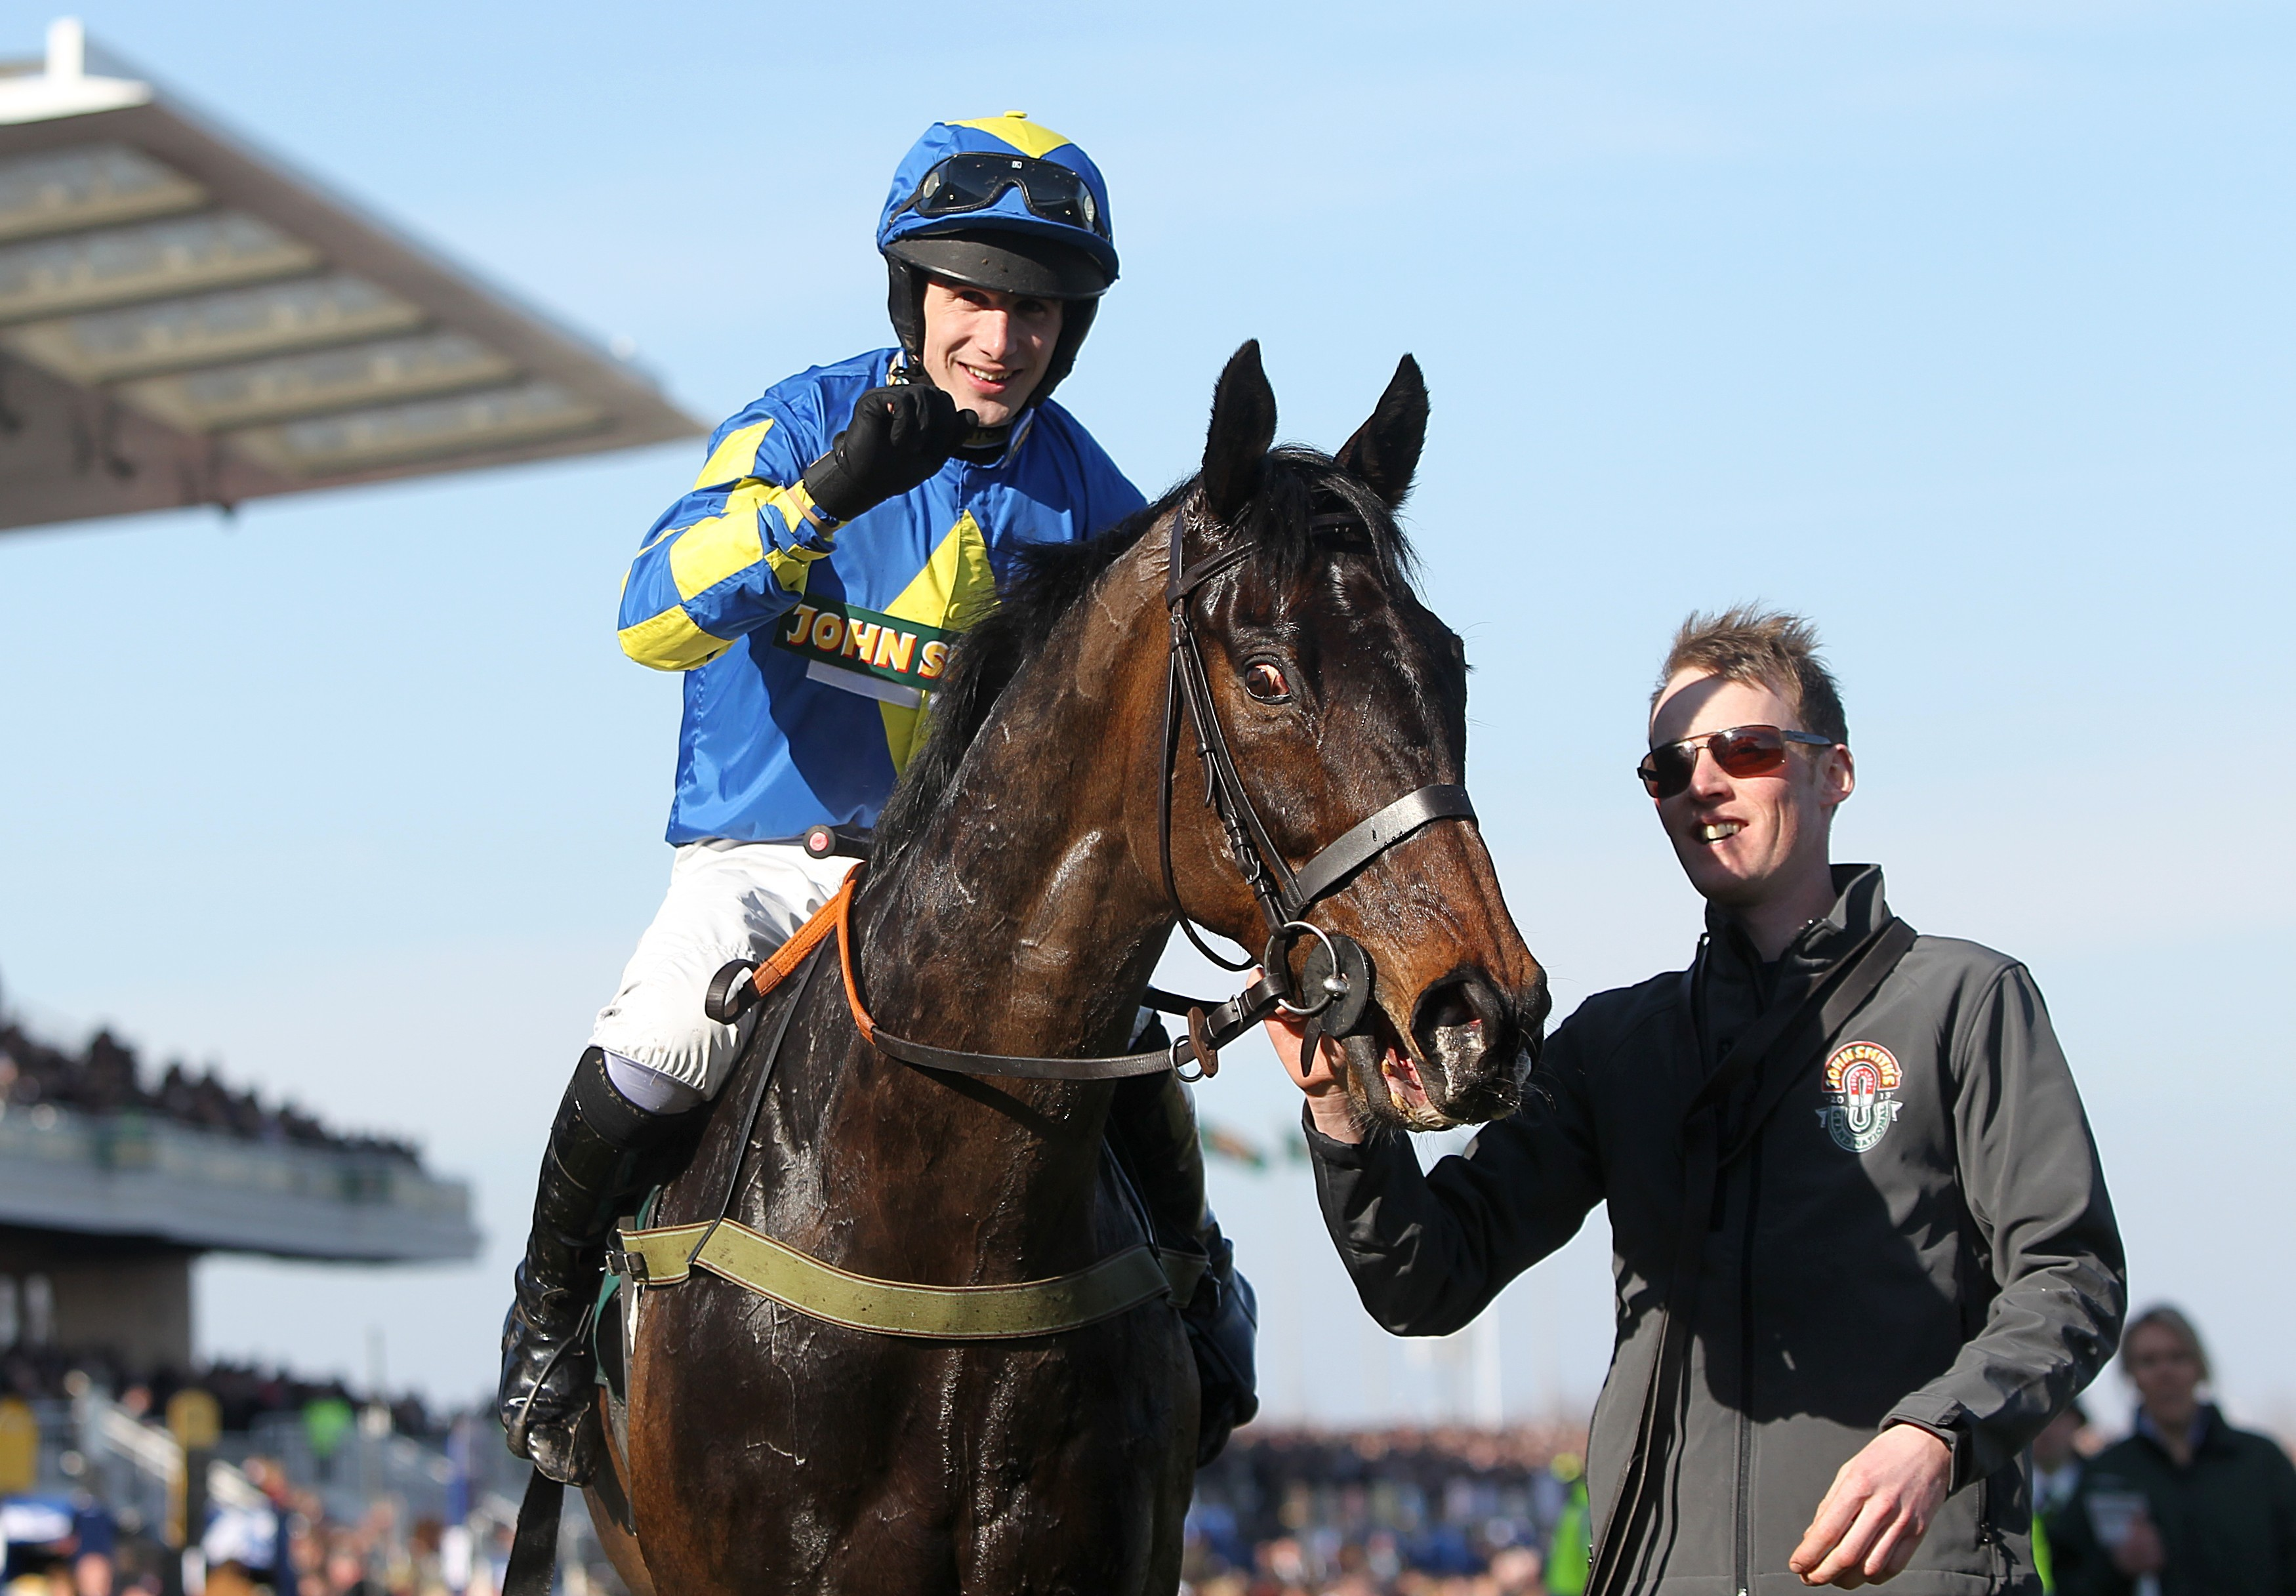 Grand National winner Ryan Mania rushed to hospital after fall at Hexham